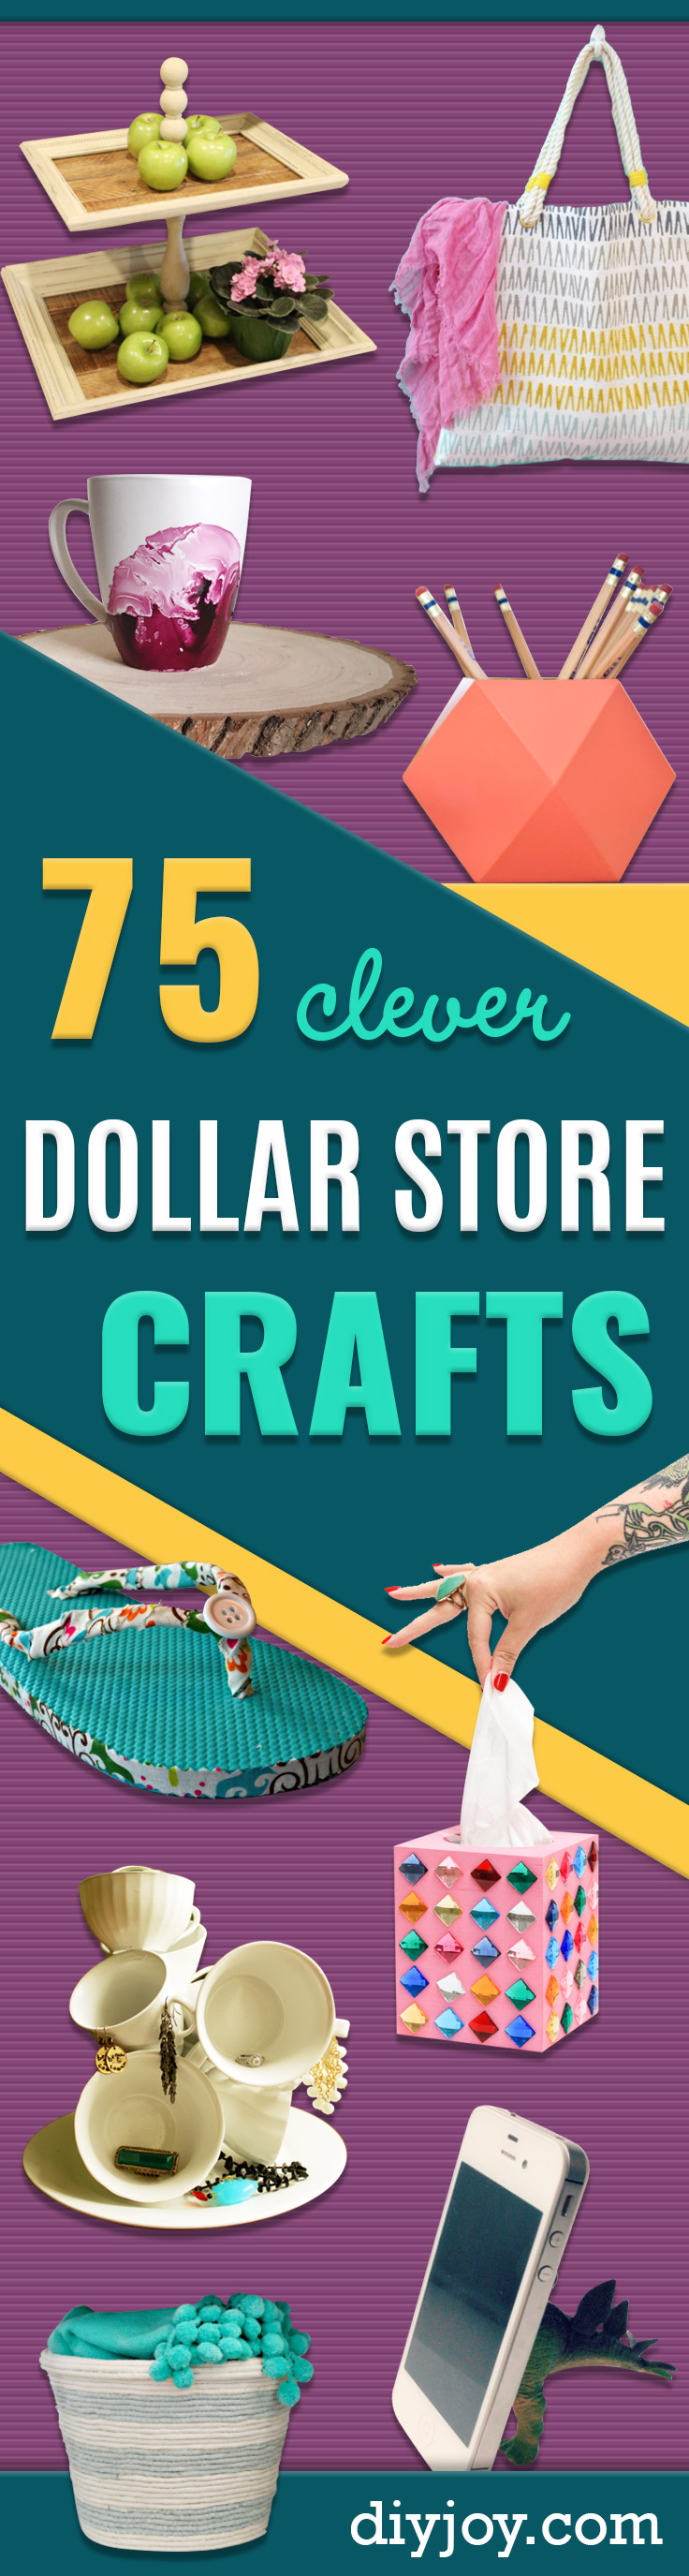 Dollar Store Crafts - Best Cheap DIY Dollar Store Craft Ideas for Kids, Teen, Adults, Gifts and For Home - Christmas Gift Ideas, Jewelry, Easy Decorations. Crafts to Make and Sell and Organization Projects #dollarstore #crafts #diy